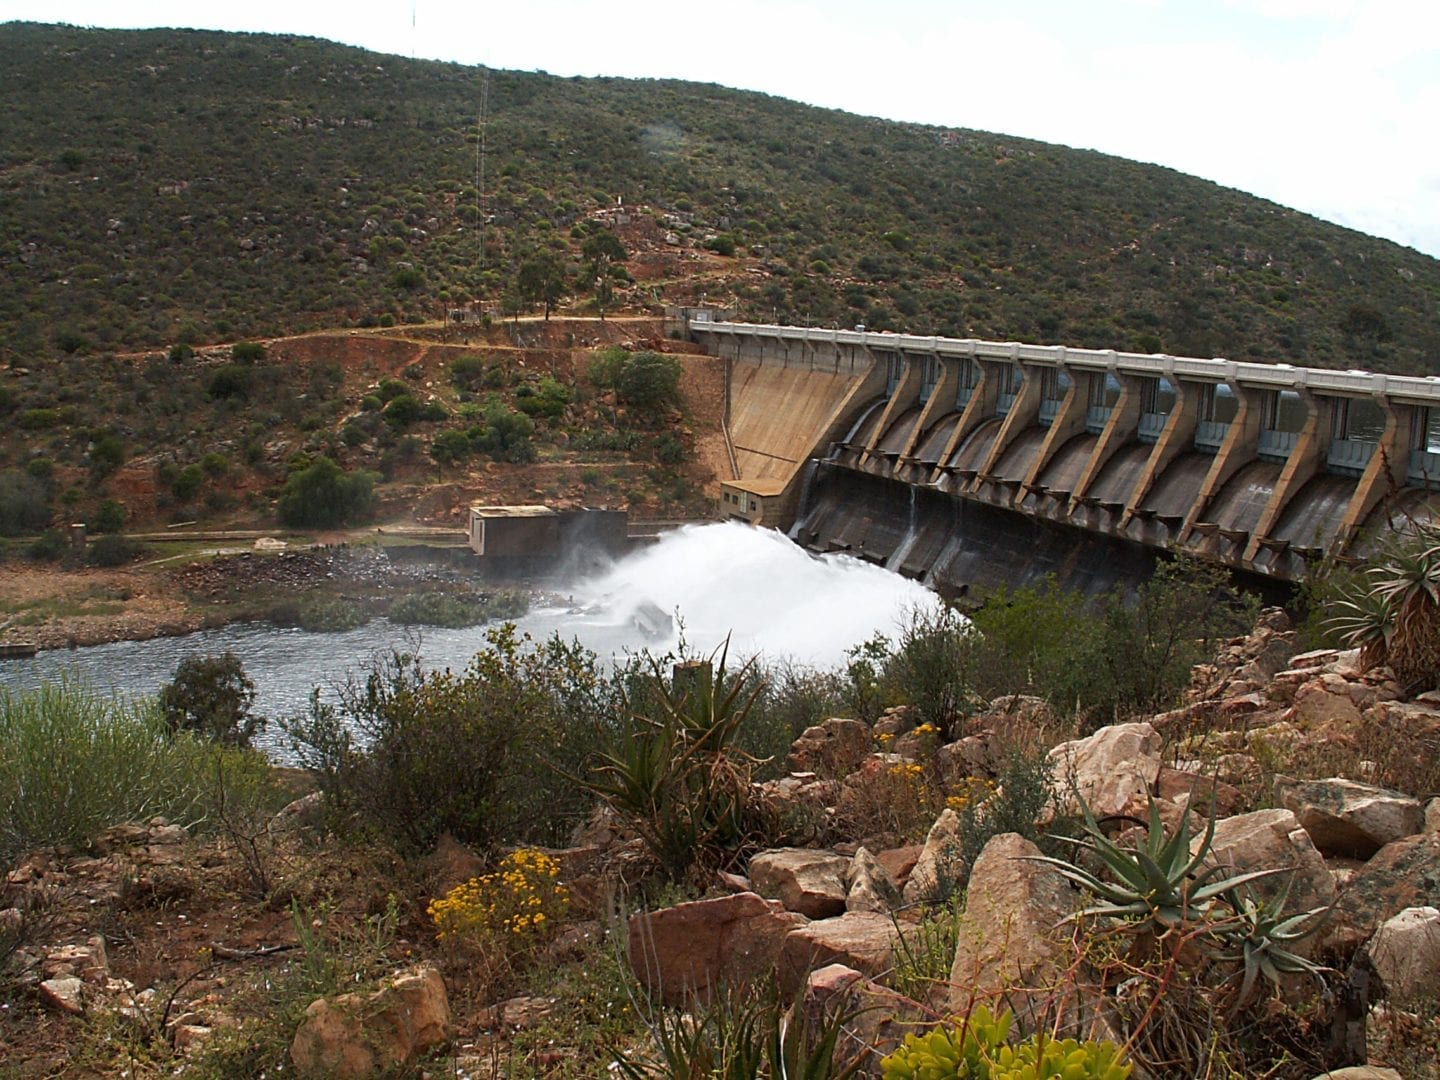 Clanwilliam Dam Project stalled due to lack of funding – Helen Zille